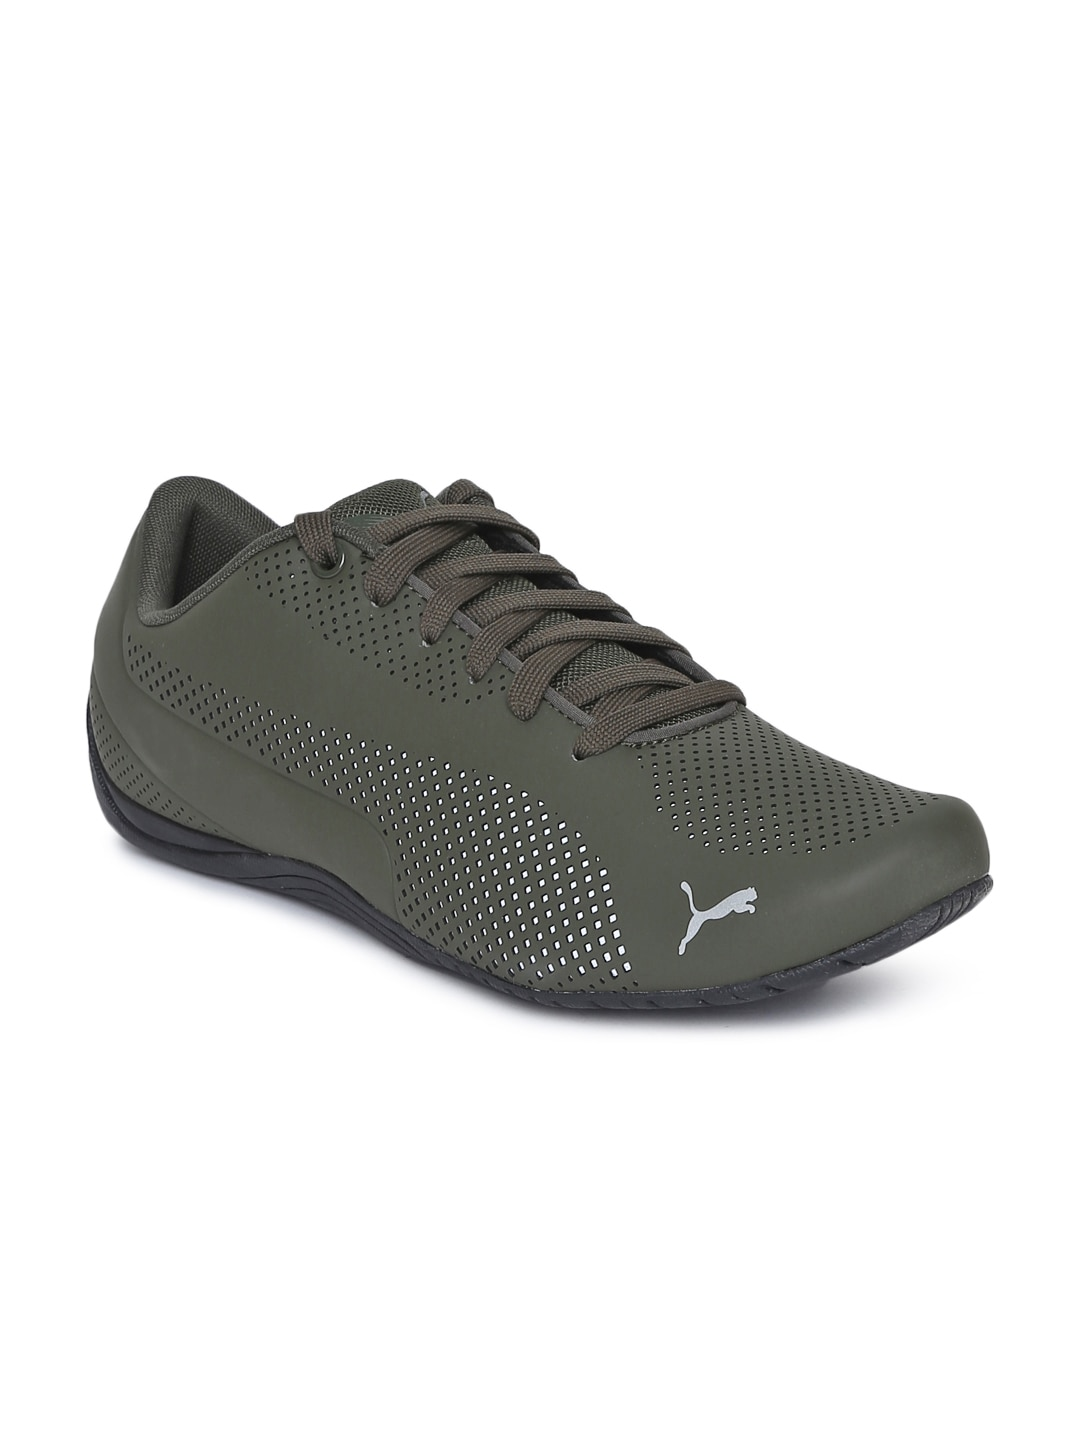 a2a278dbd1 Puma Casual Shoes - Casual Puma Shoes Online for Men Women